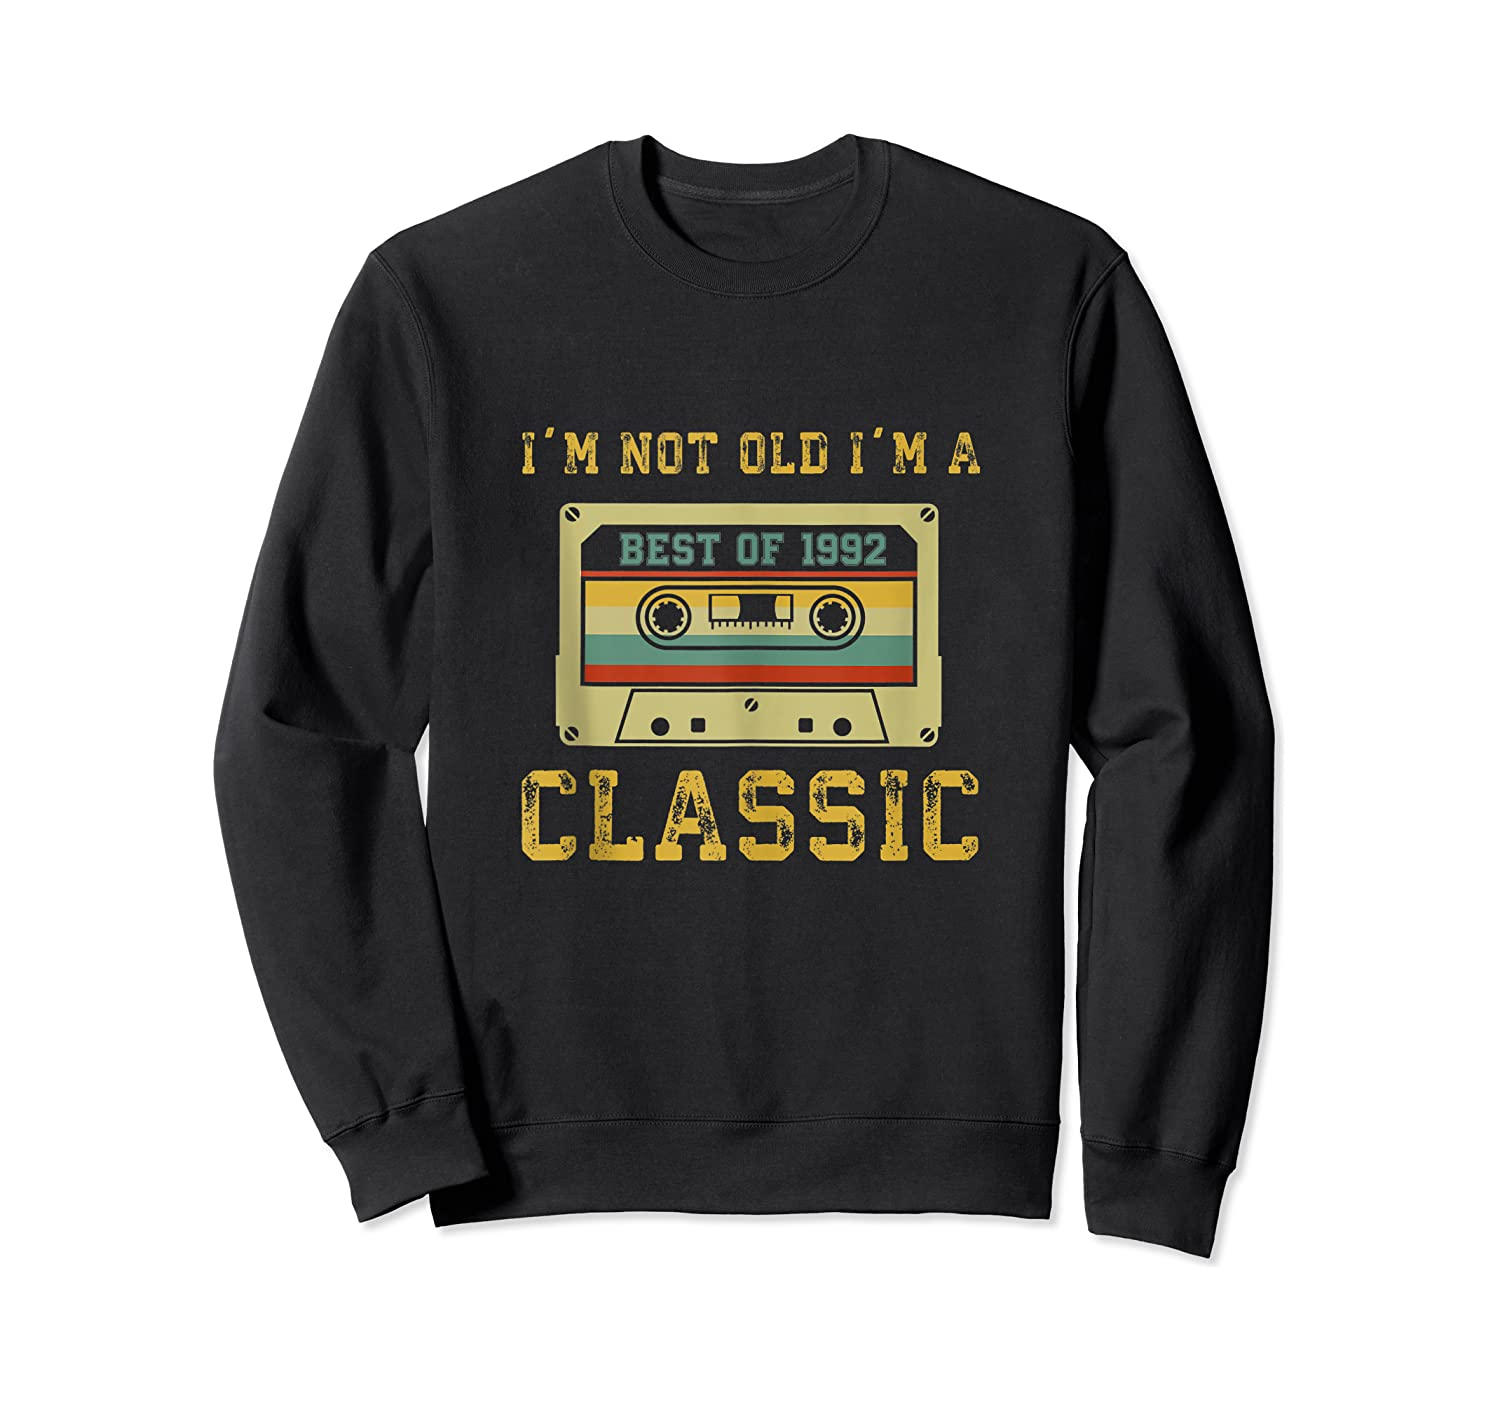 Vintage Cassette I'm Not Old I'm A Classic 1992 27th Tank Top Shirts Crewneck Sweater